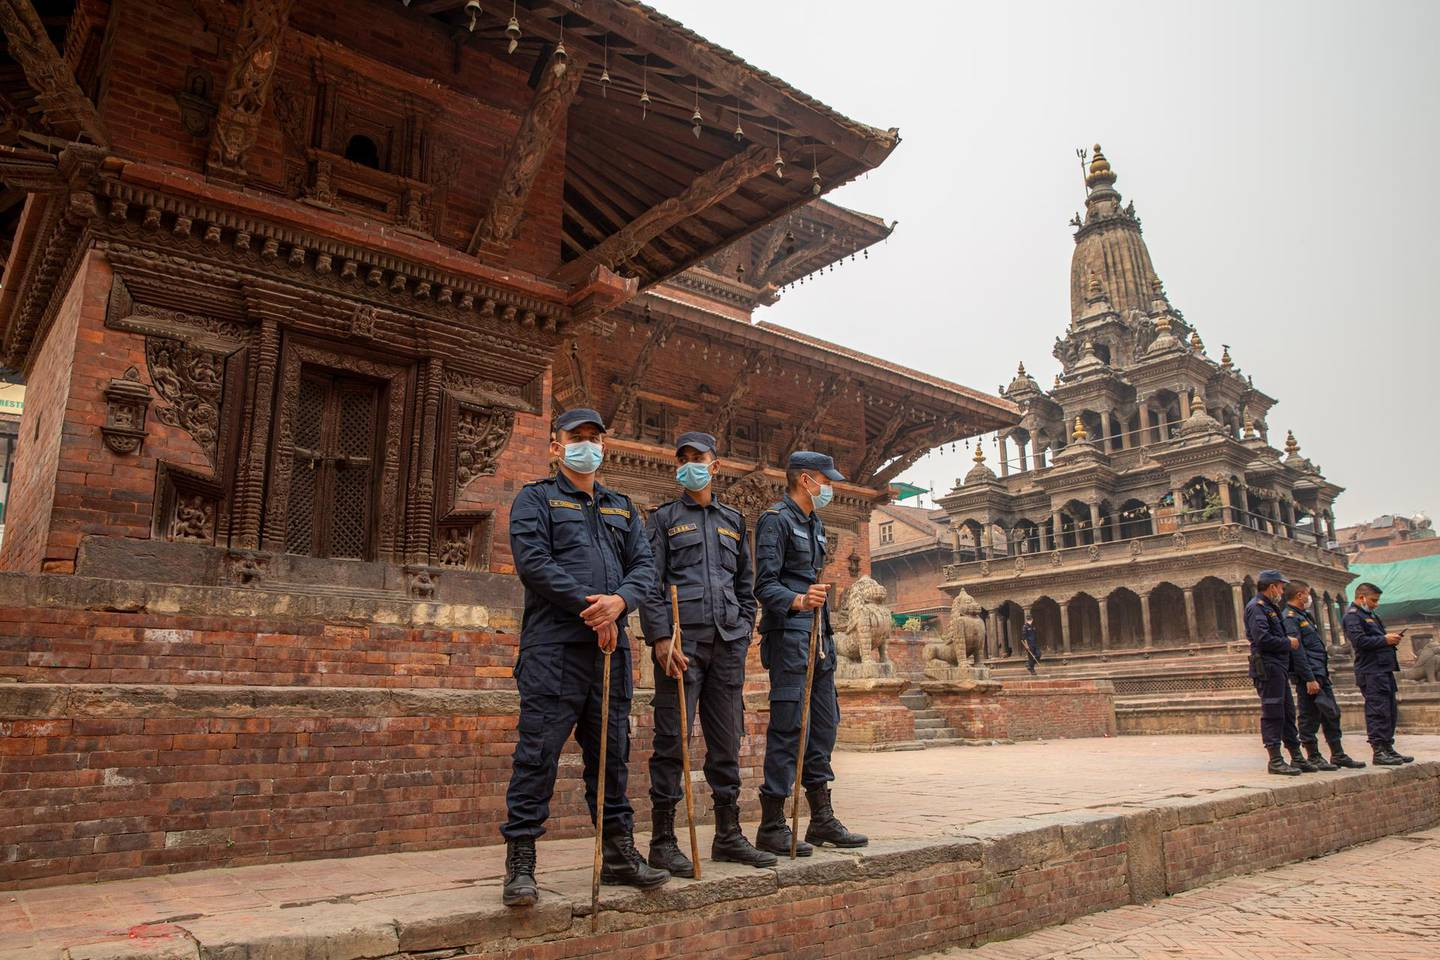 epa09102842 Nepalese police stands guard at Patan Durbar Square during celebrations of Holi Festival amidst Coronavirus restrictions in Kathmandu, Nepal, 28 March 2021. Holi, also known as the Festival of Colors, marks the beginning of spring and is celebrated all over Nepal and neighboring India. Nepal government restricted to celebrate the Holi festival by gathering crowd and organizing party due to the spread of the coronavirus COVID-19 disease.  EPA/NARENDRA SHRESTHA